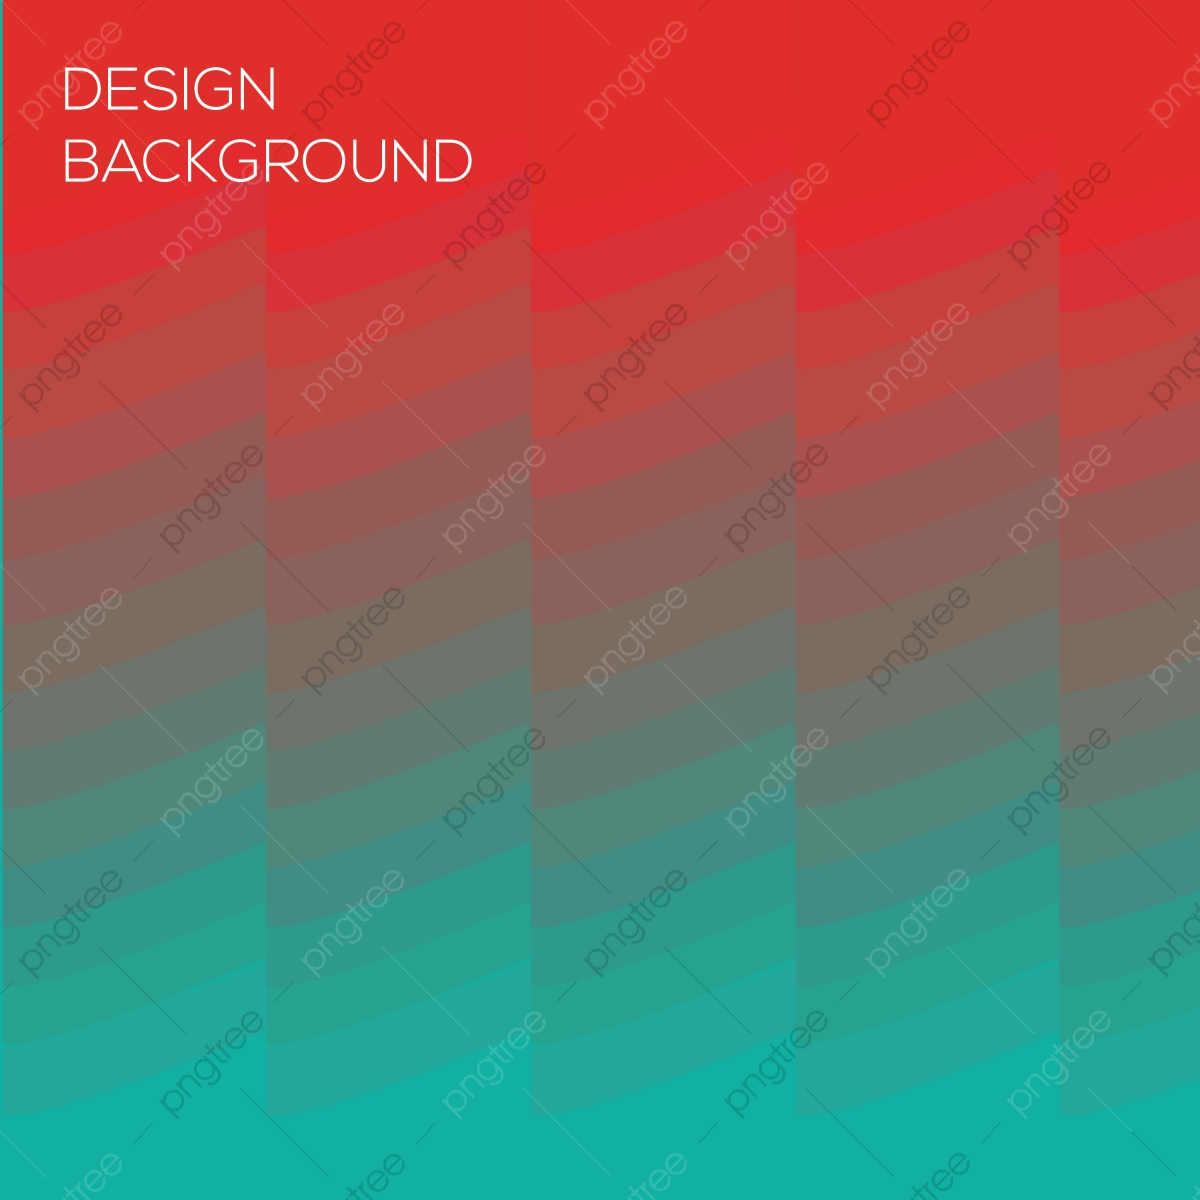 Blue To Red Abstract Background Red Text Shapes Png And